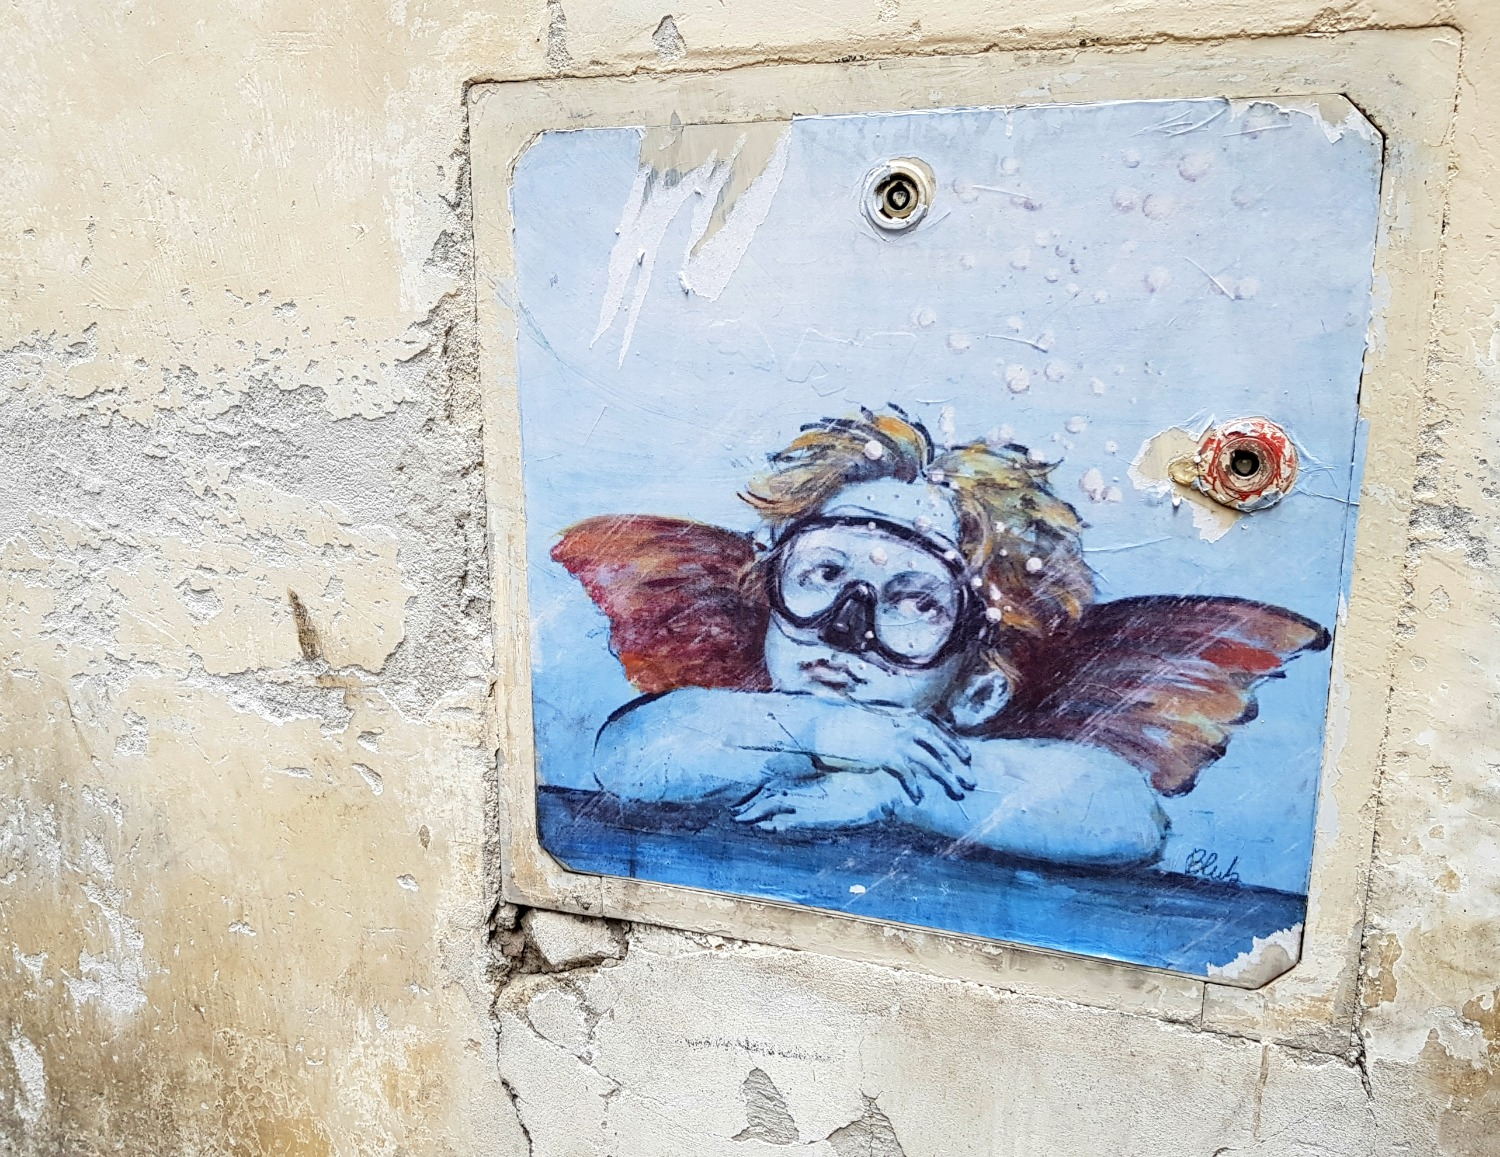 Updated cherub street art in Florence, Italy - my Uffizi tour with kids and gelato making day in Florence